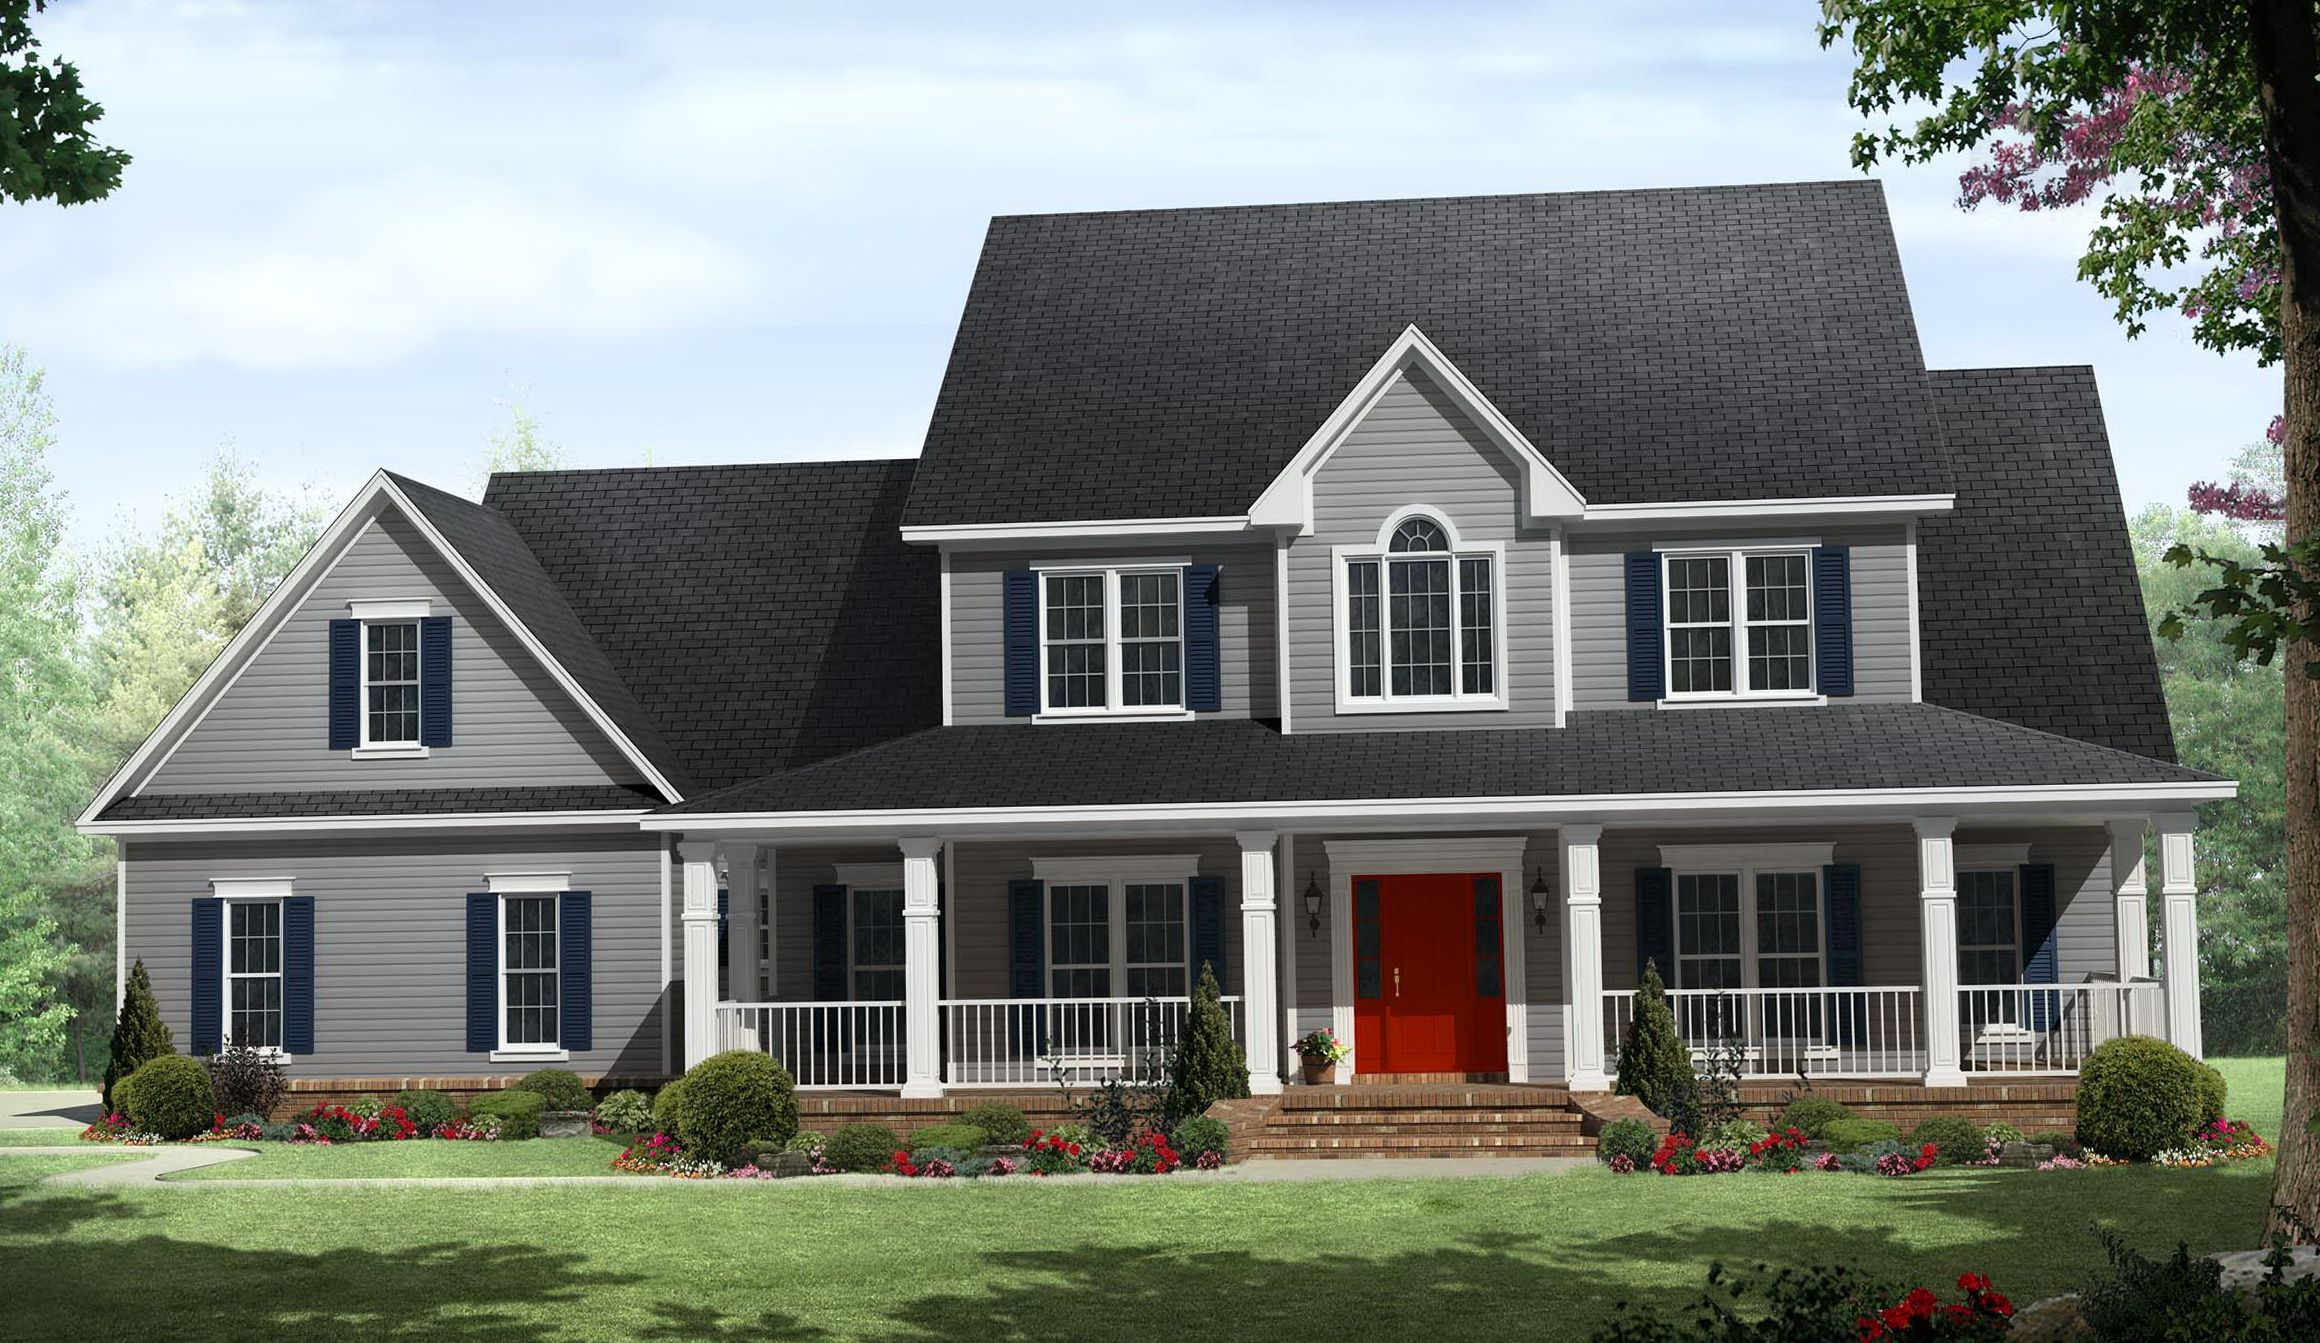 2 story farmhouse with wrap around porch do you assume 2 story farmhouse - 2 Story Country House Plans